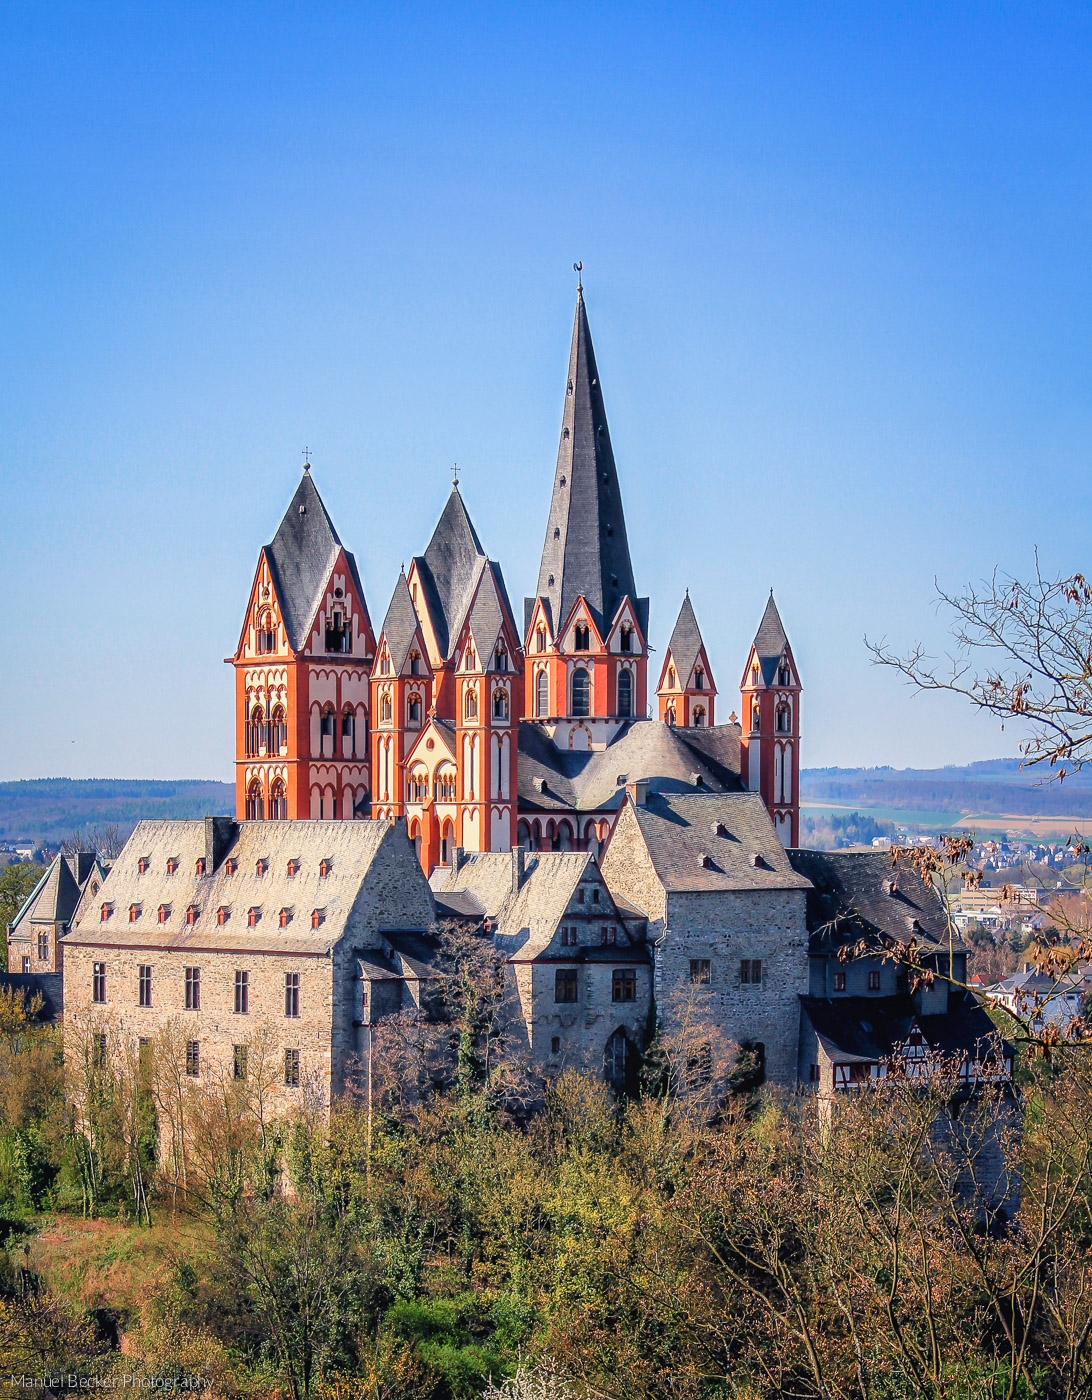 Cathedral of Limburg a. d. Lahn, Germany